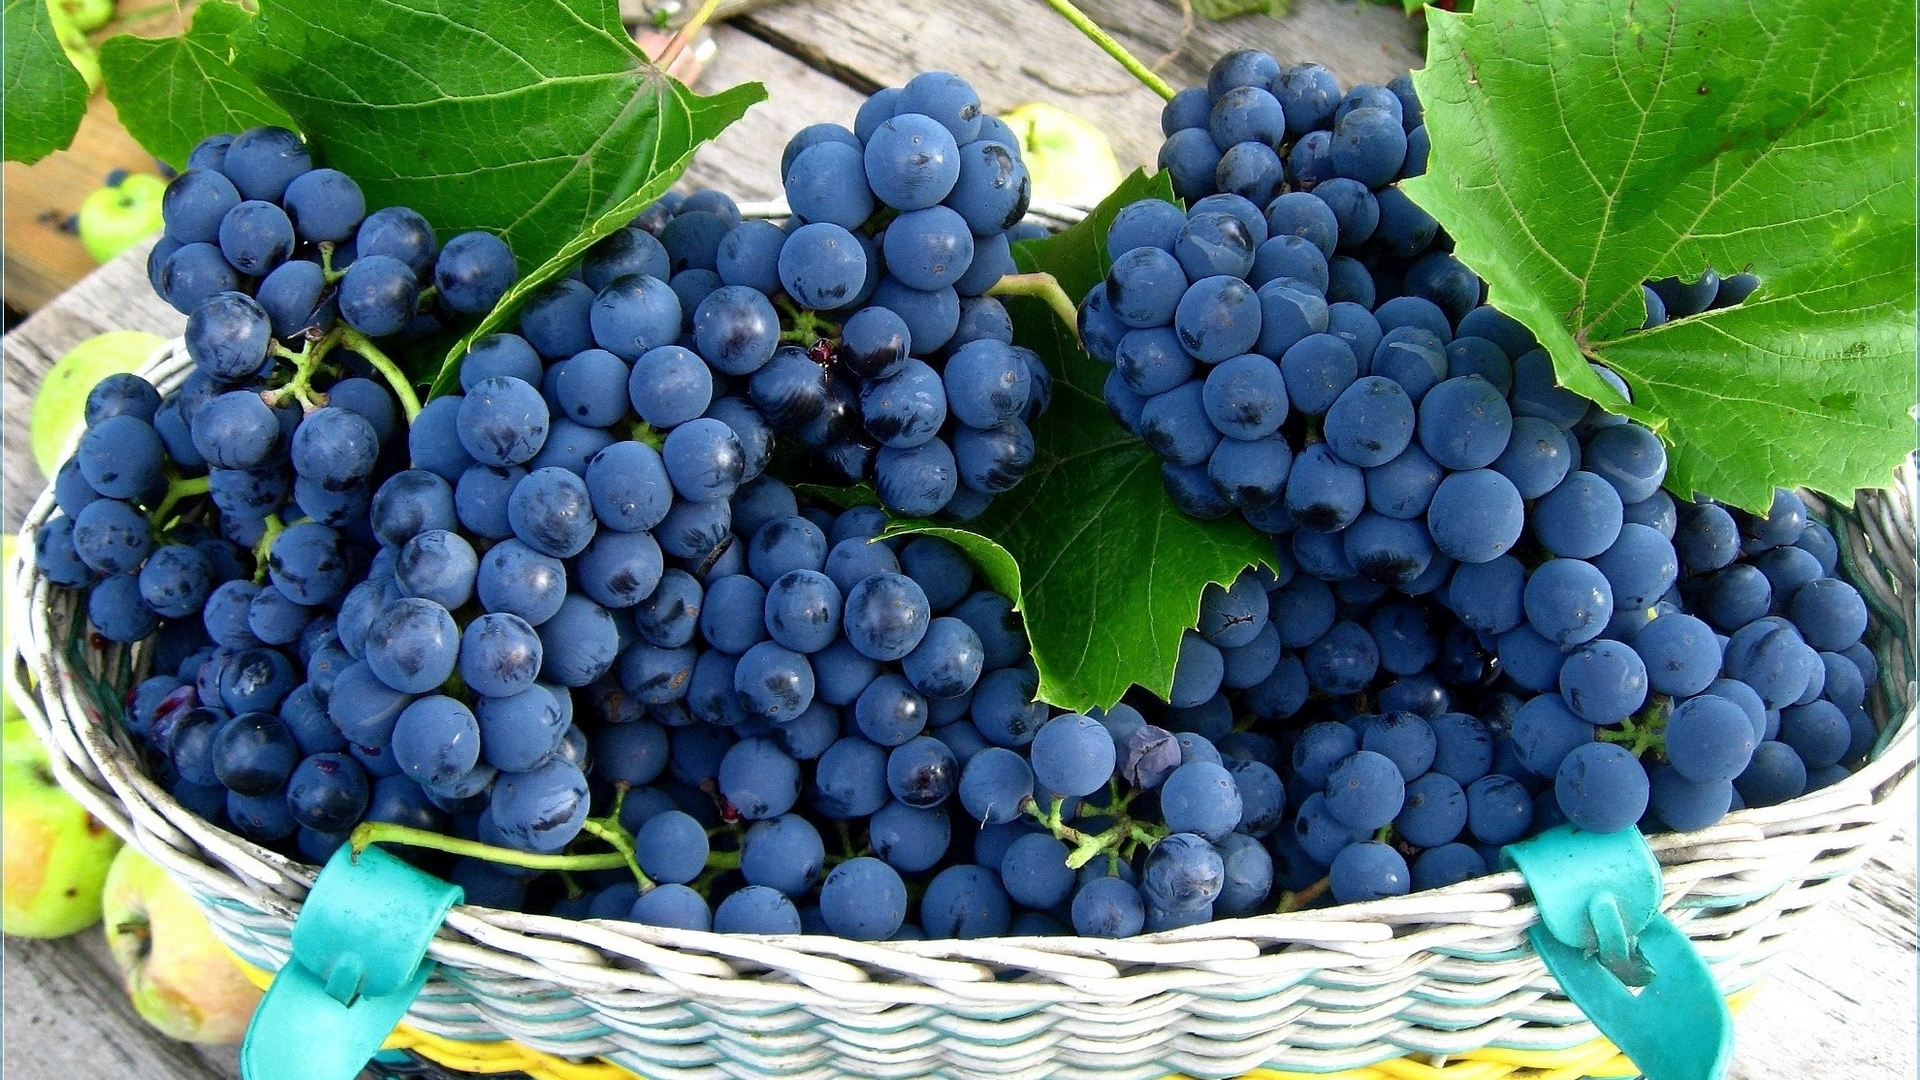 Grapes wallpaper 27648 1920x1080